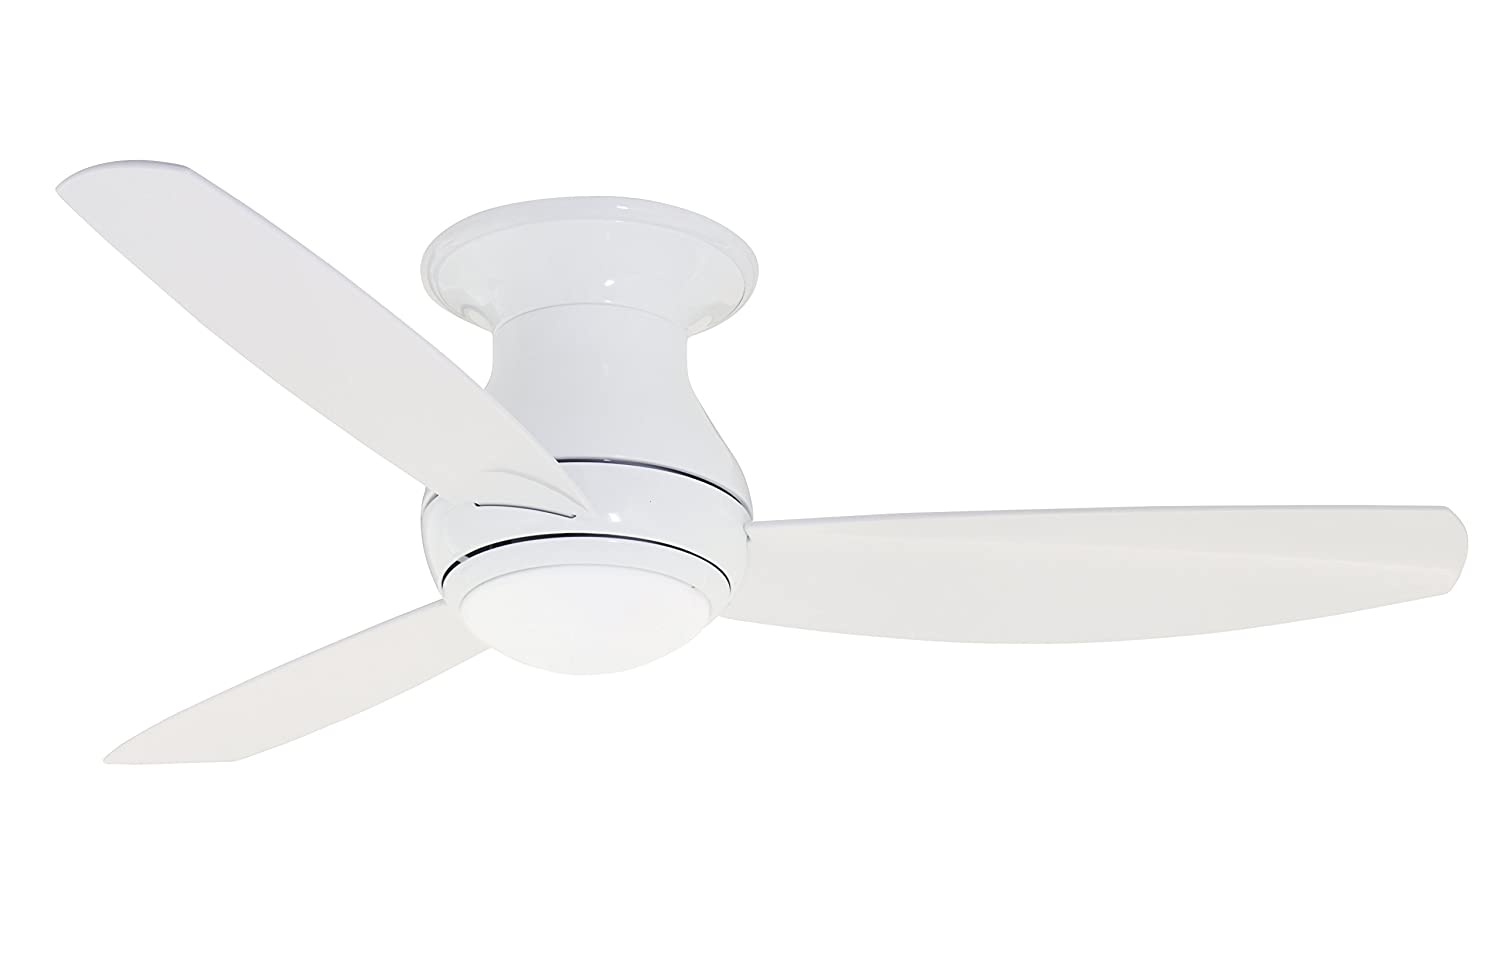 Emerson CF152LORB Curva Sky 52-inch Modern Ceiling Fan, 3-Blade Ceiling Fan with LED Lighting and 6-Speed Remote Control